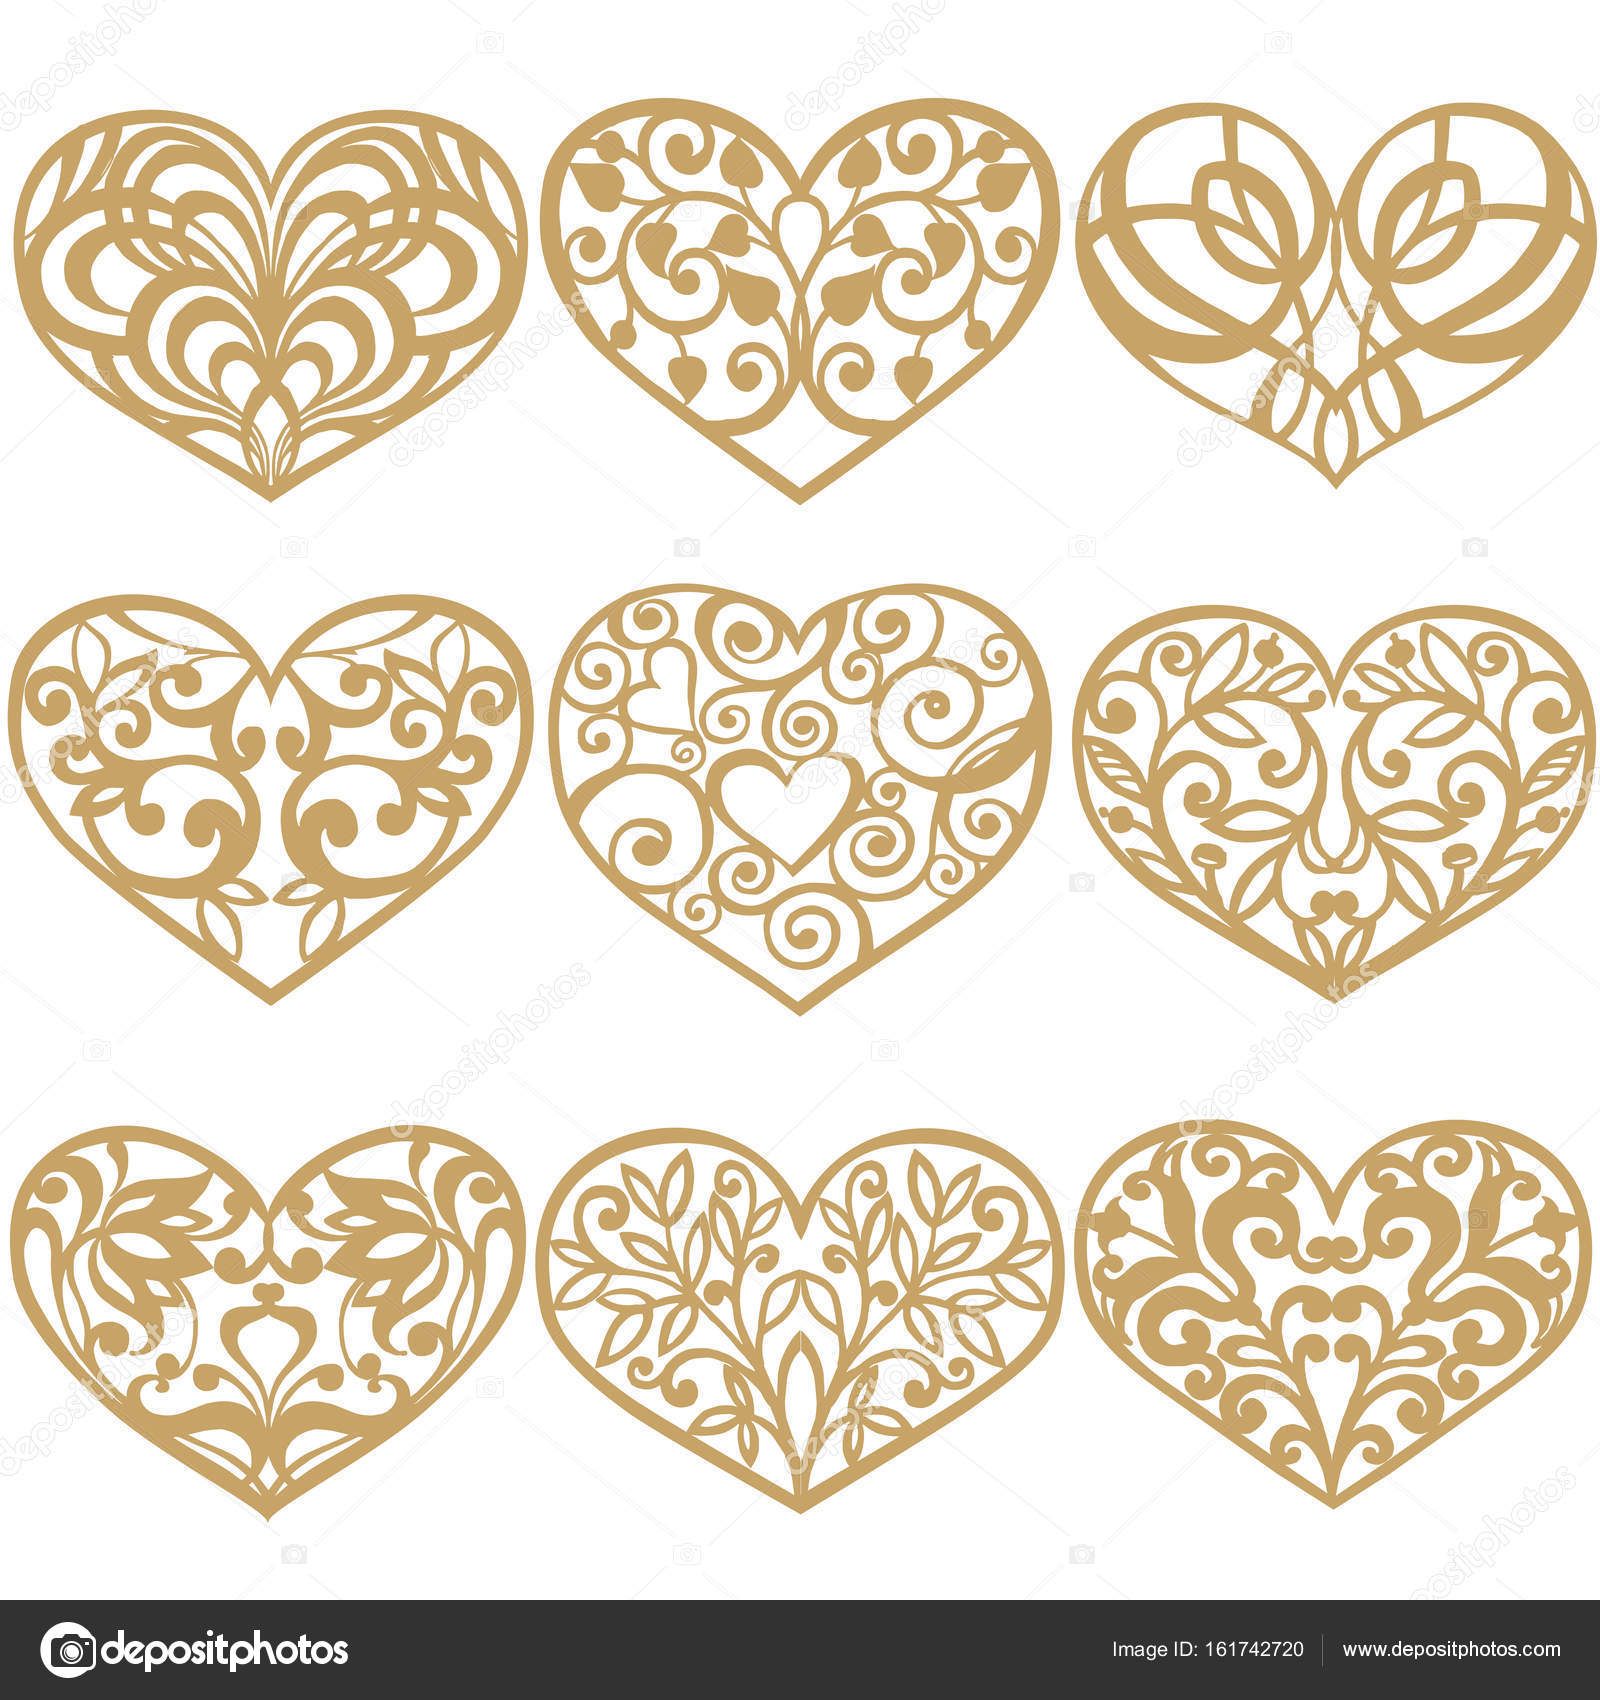 Heart Templates | Set Of Laser Cut Hearts Collection Of Decorative Gold Hearts